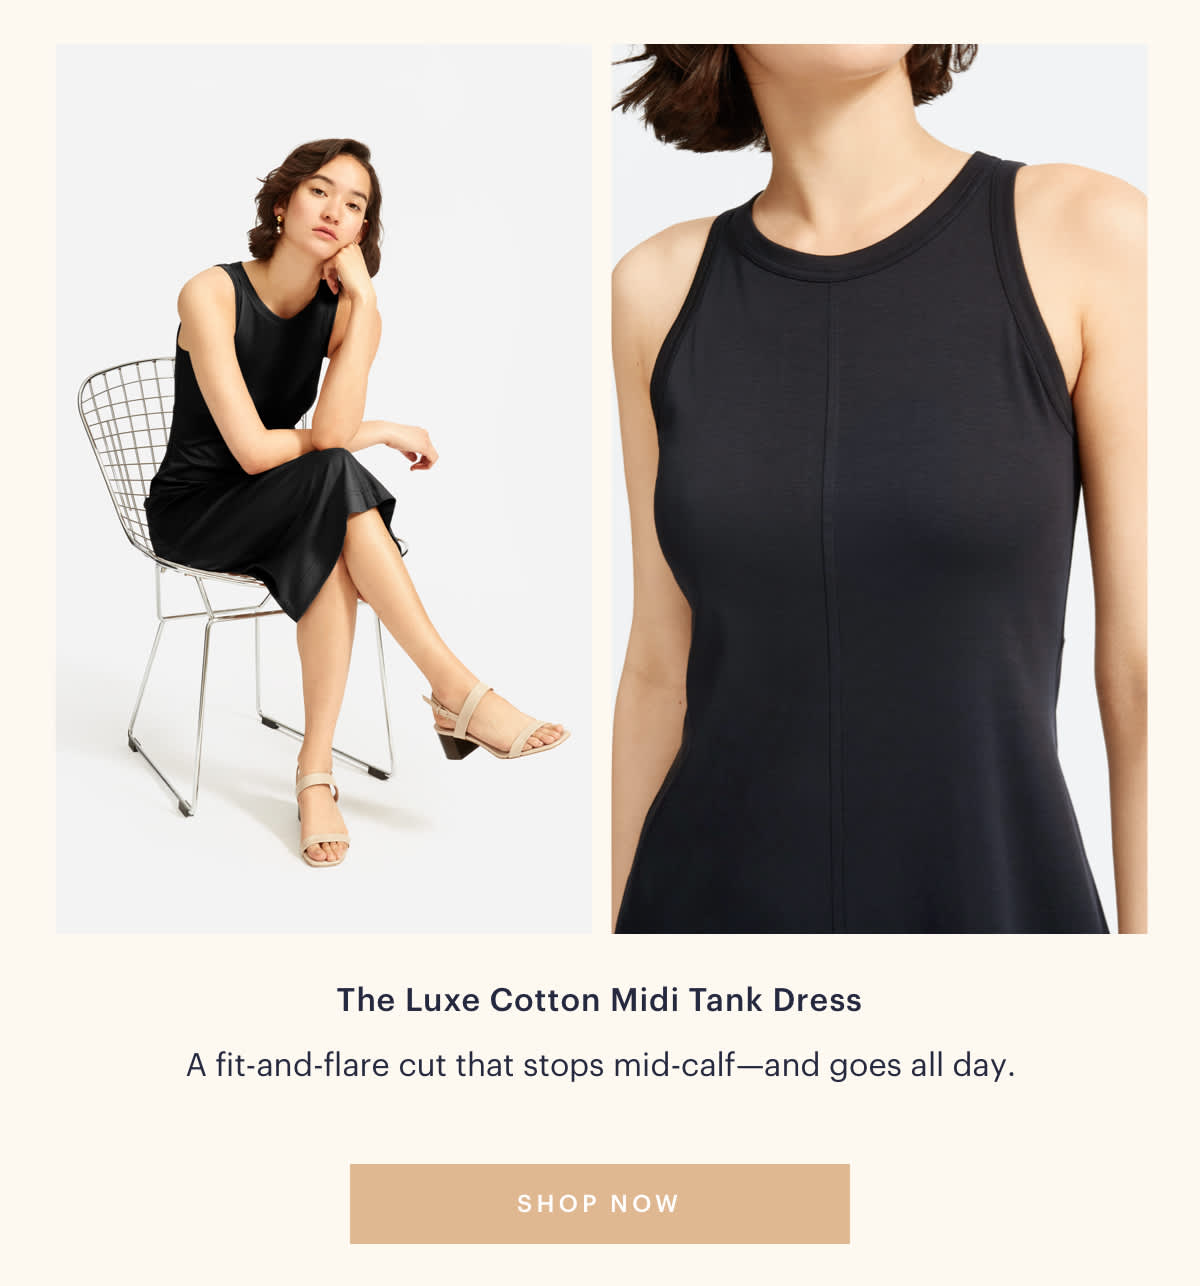 The Luxe Cotton Midi Tank Dress. A fit-and-flare cut that stops mid-calf--and goes all day. SHOP NOW